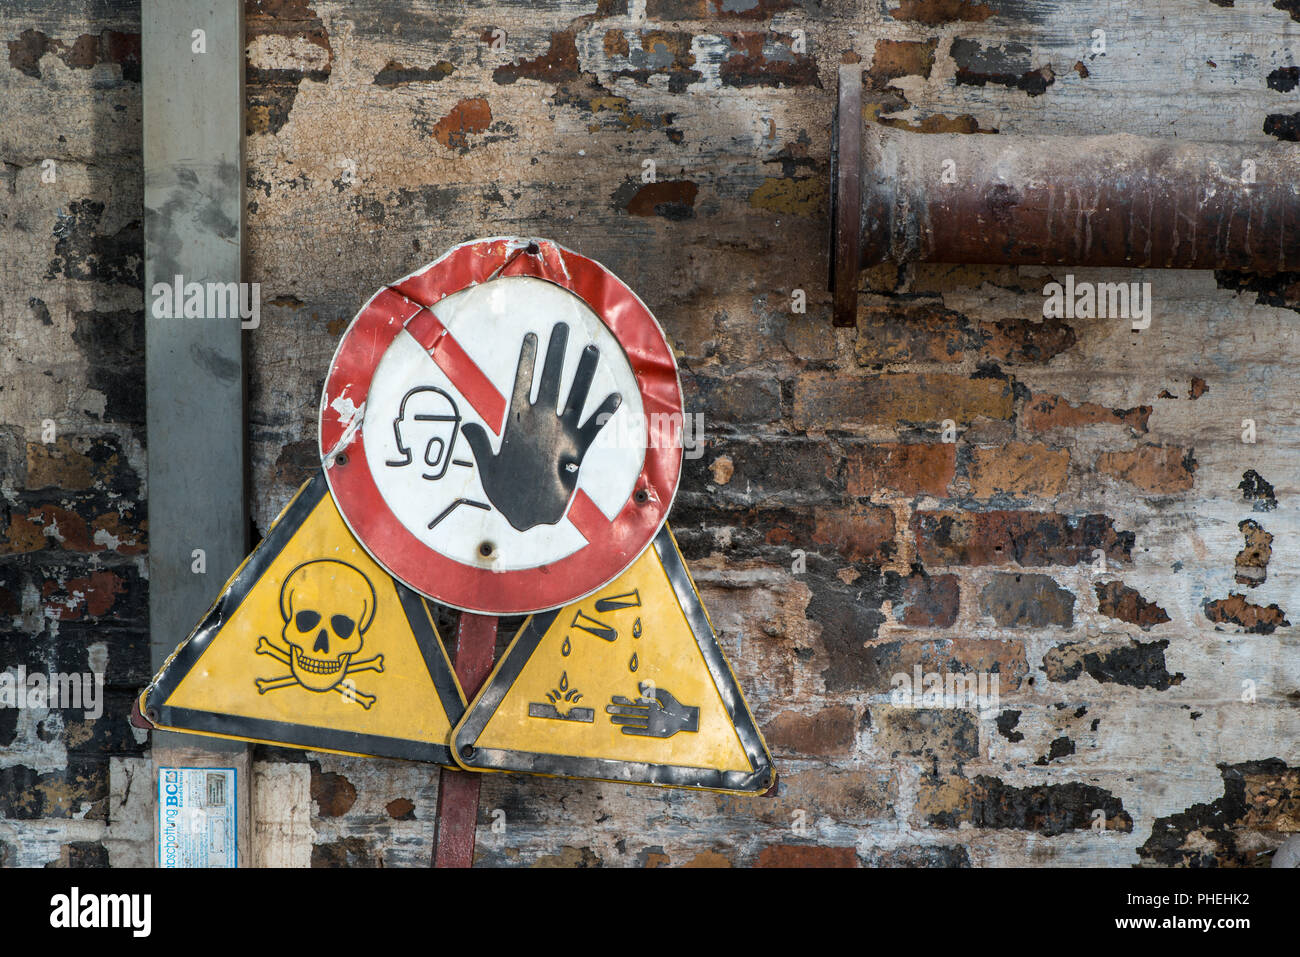 Signs for Dangerous Things and Poison - Stock Image